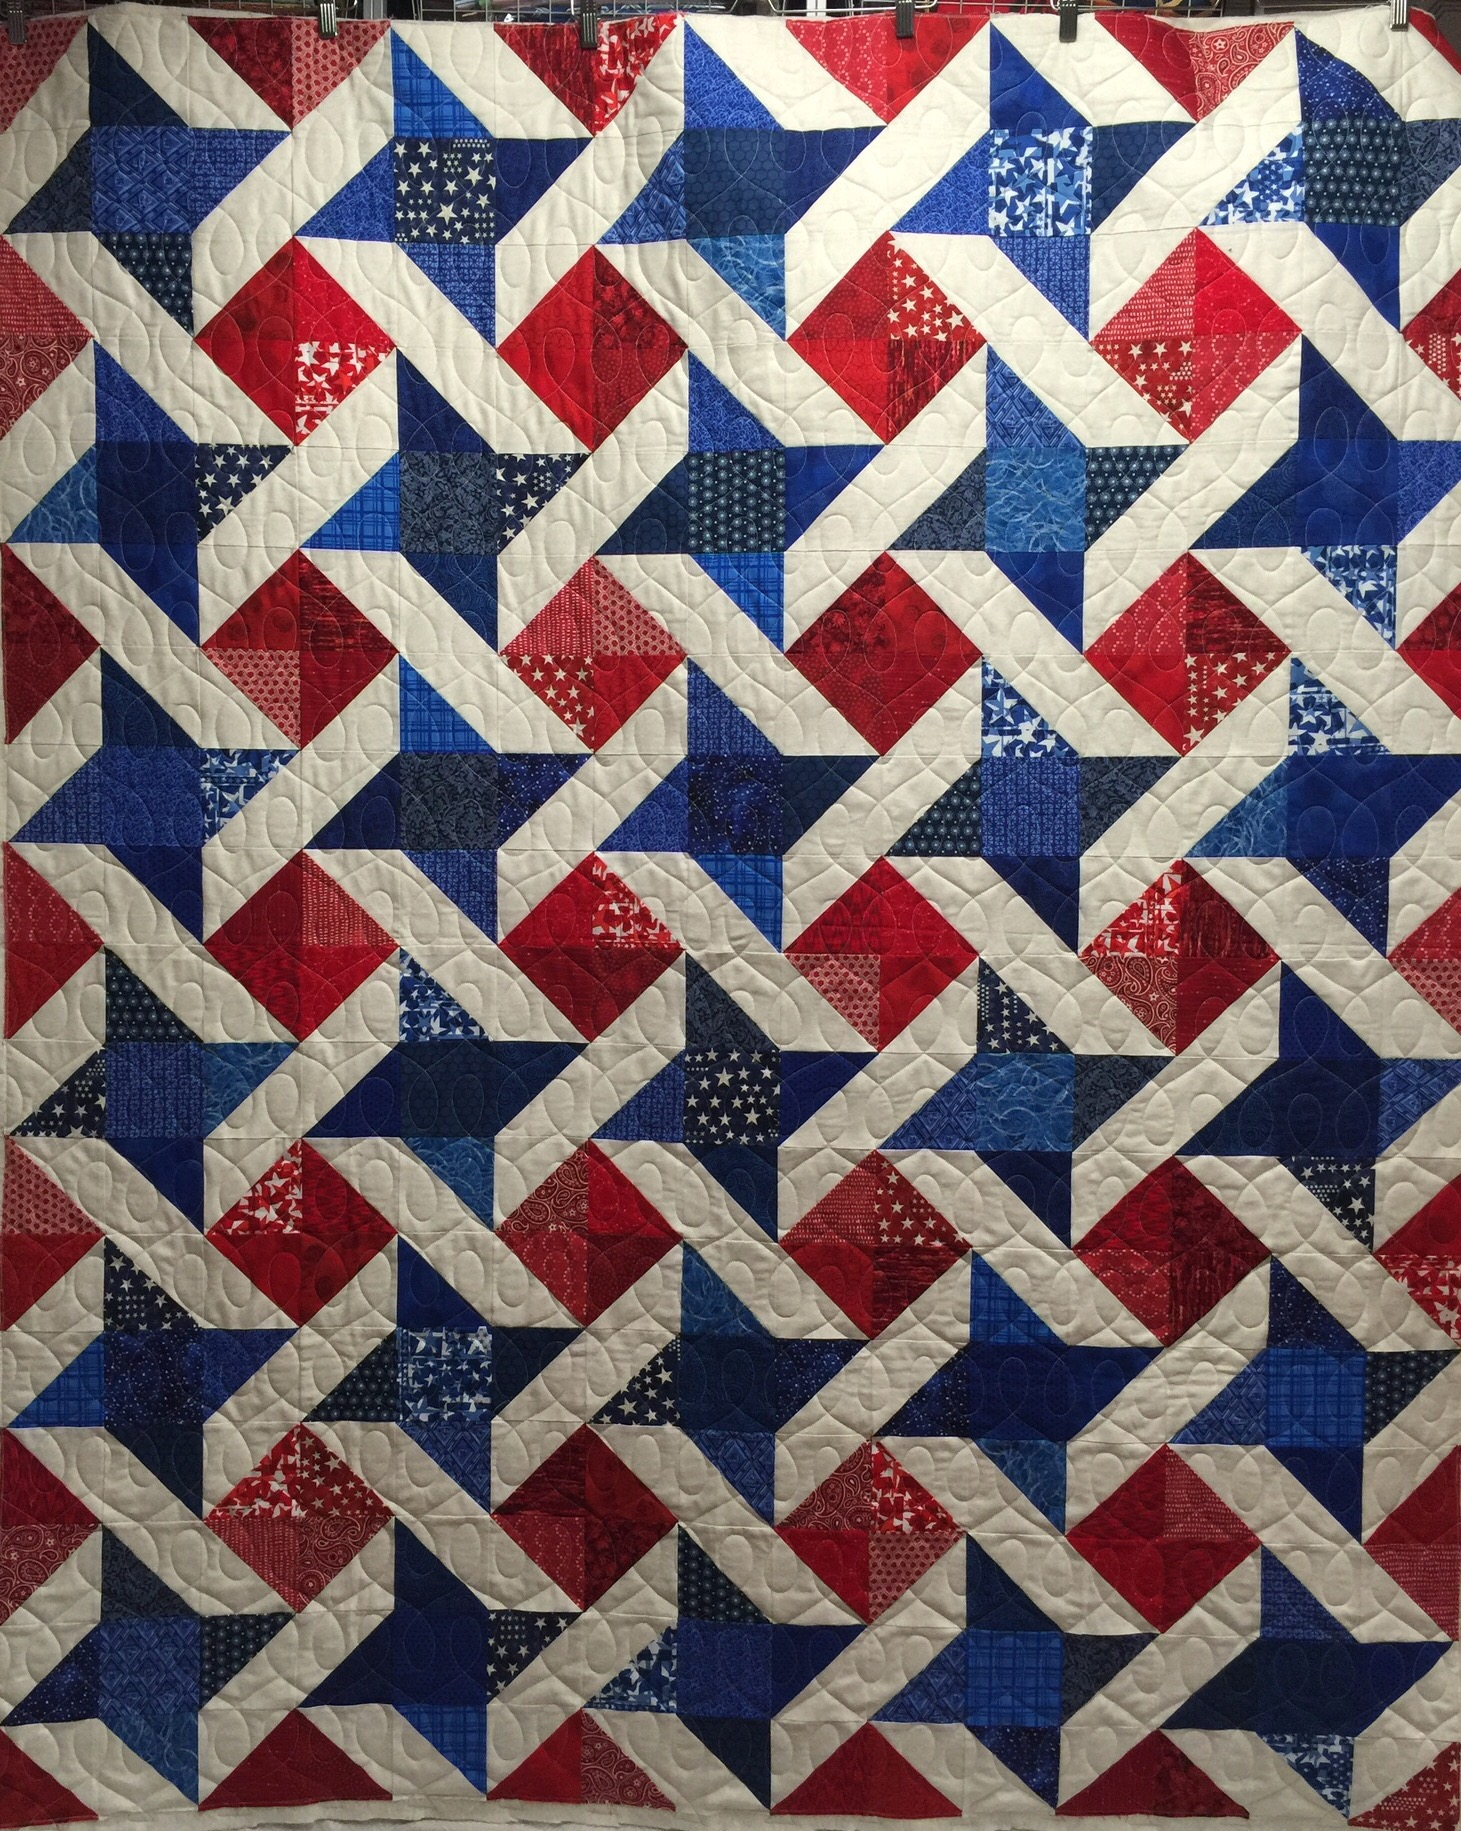 Star Quilt Patterns For Beginners